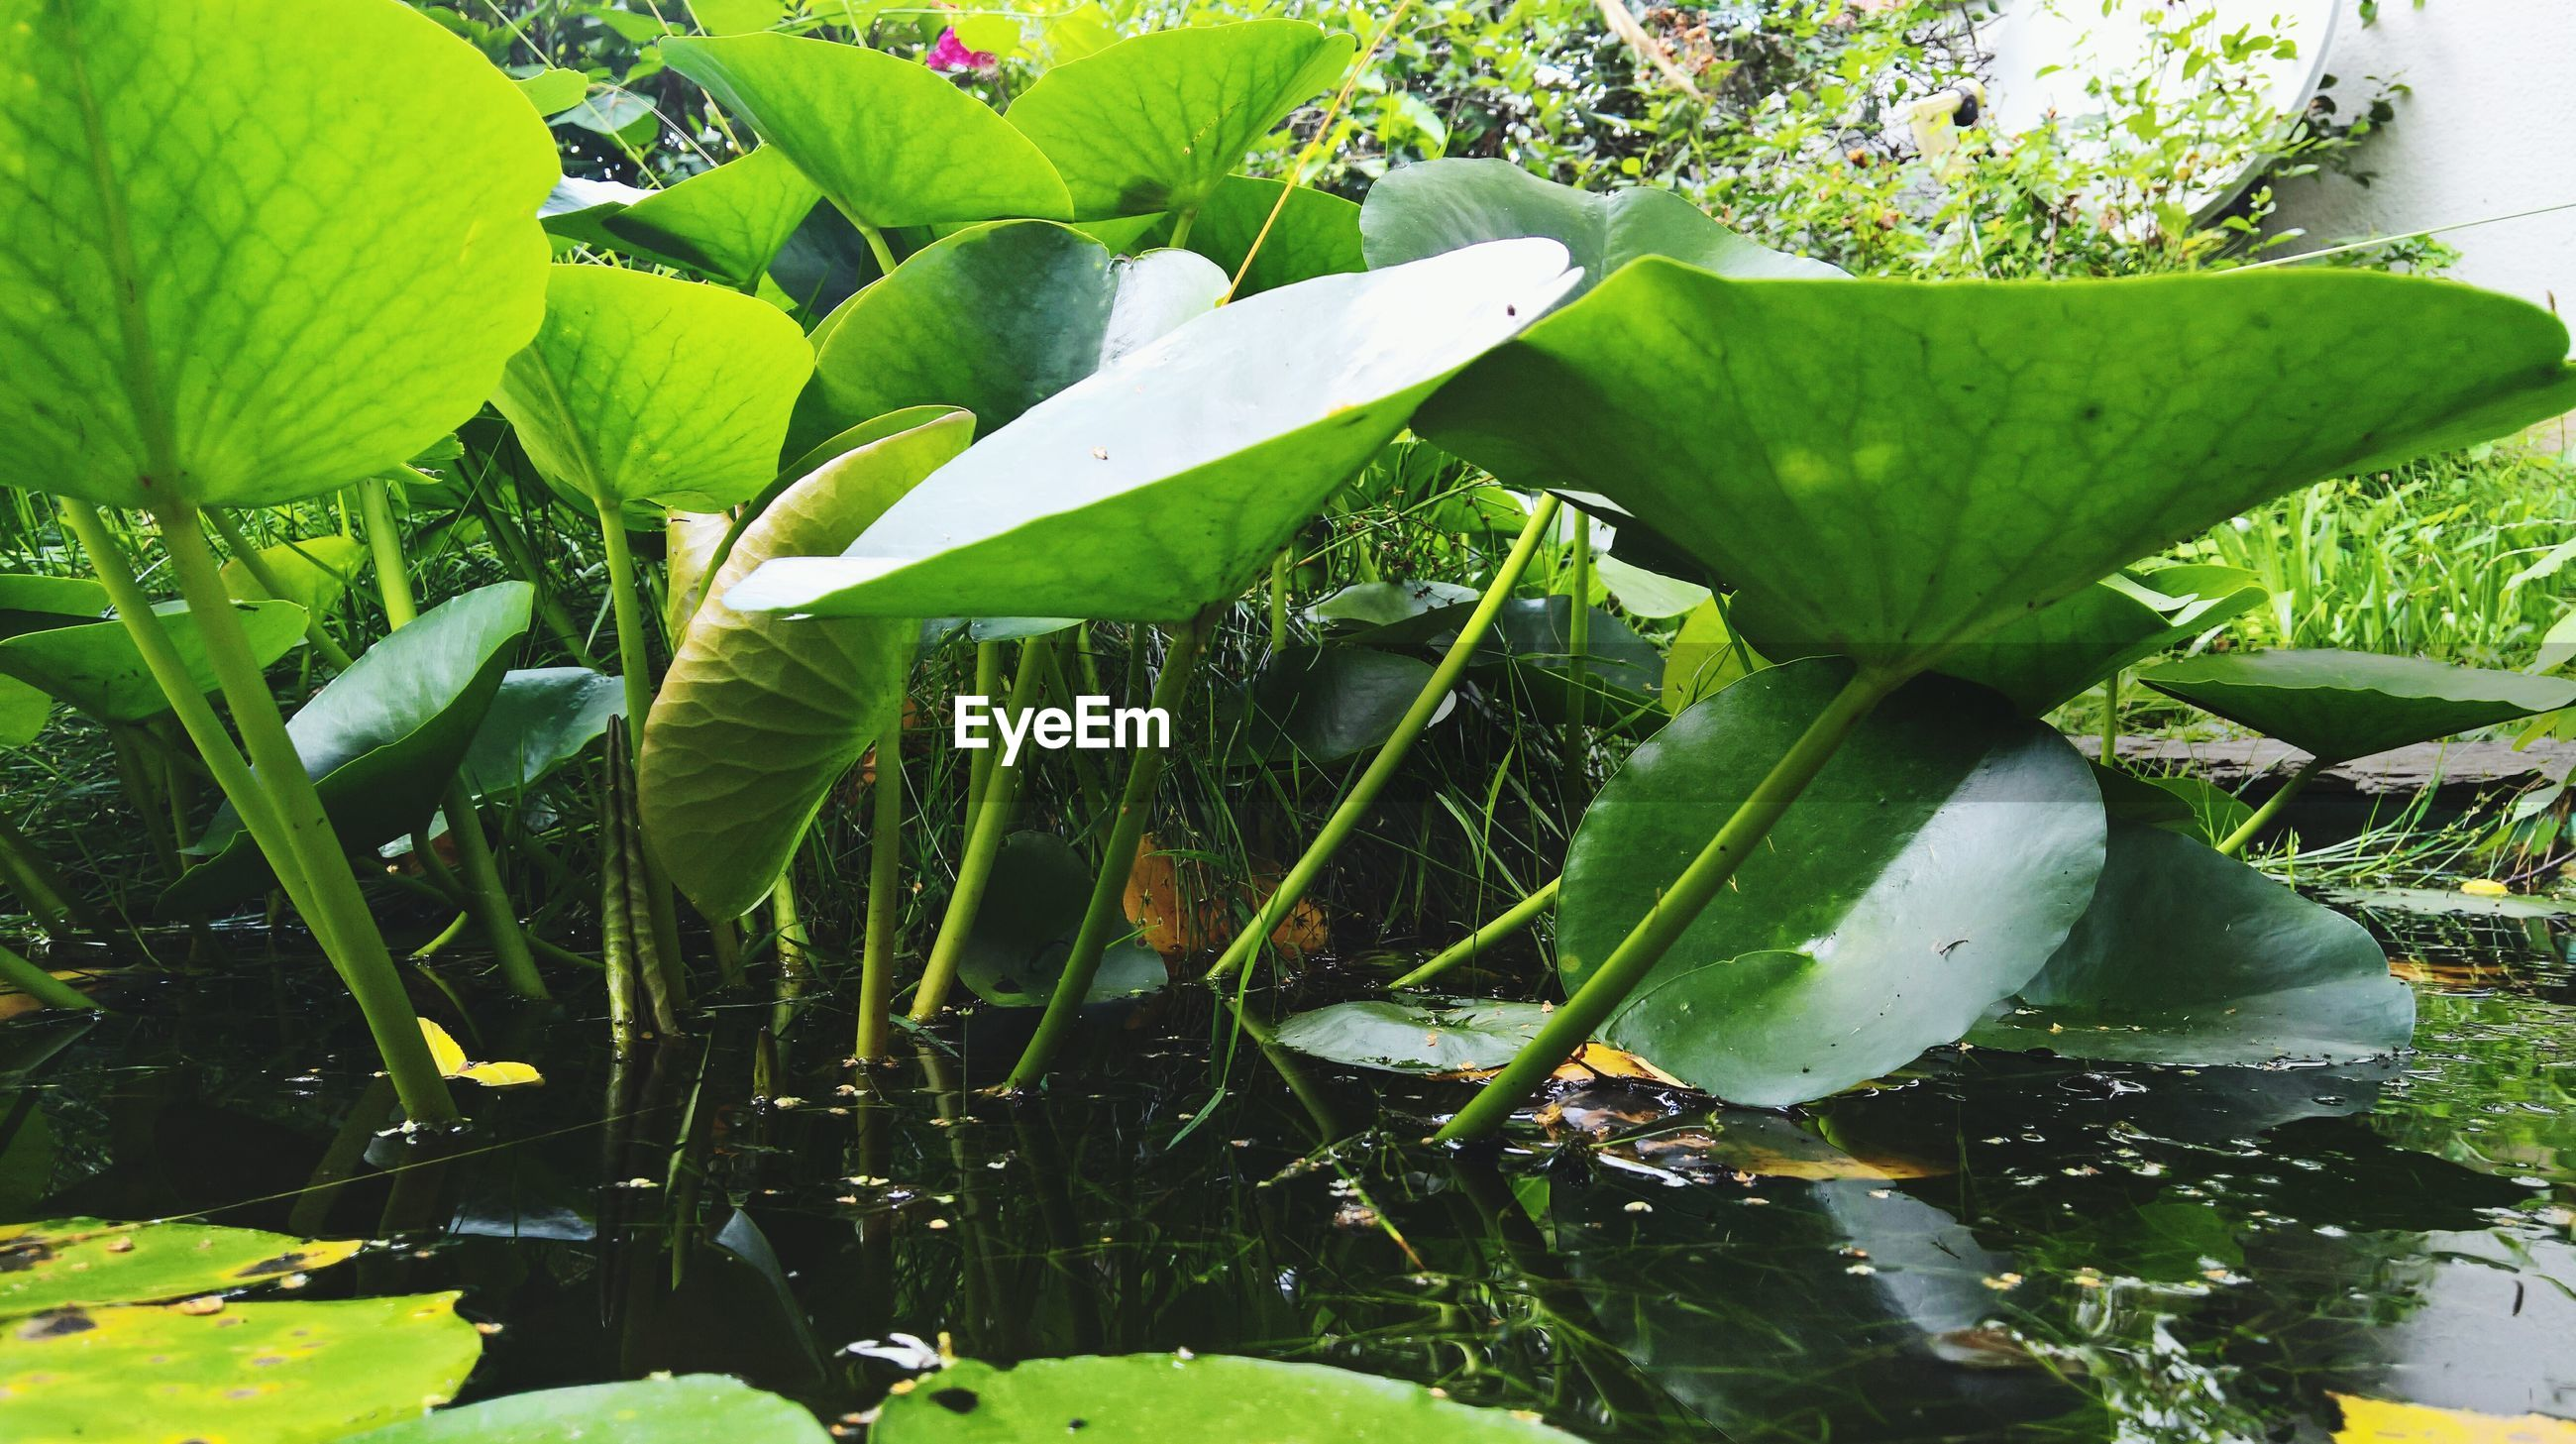 leaf, growth, green color, nature, plant, beauty in nature, day, outdoors, freshness, no people, water, close-up